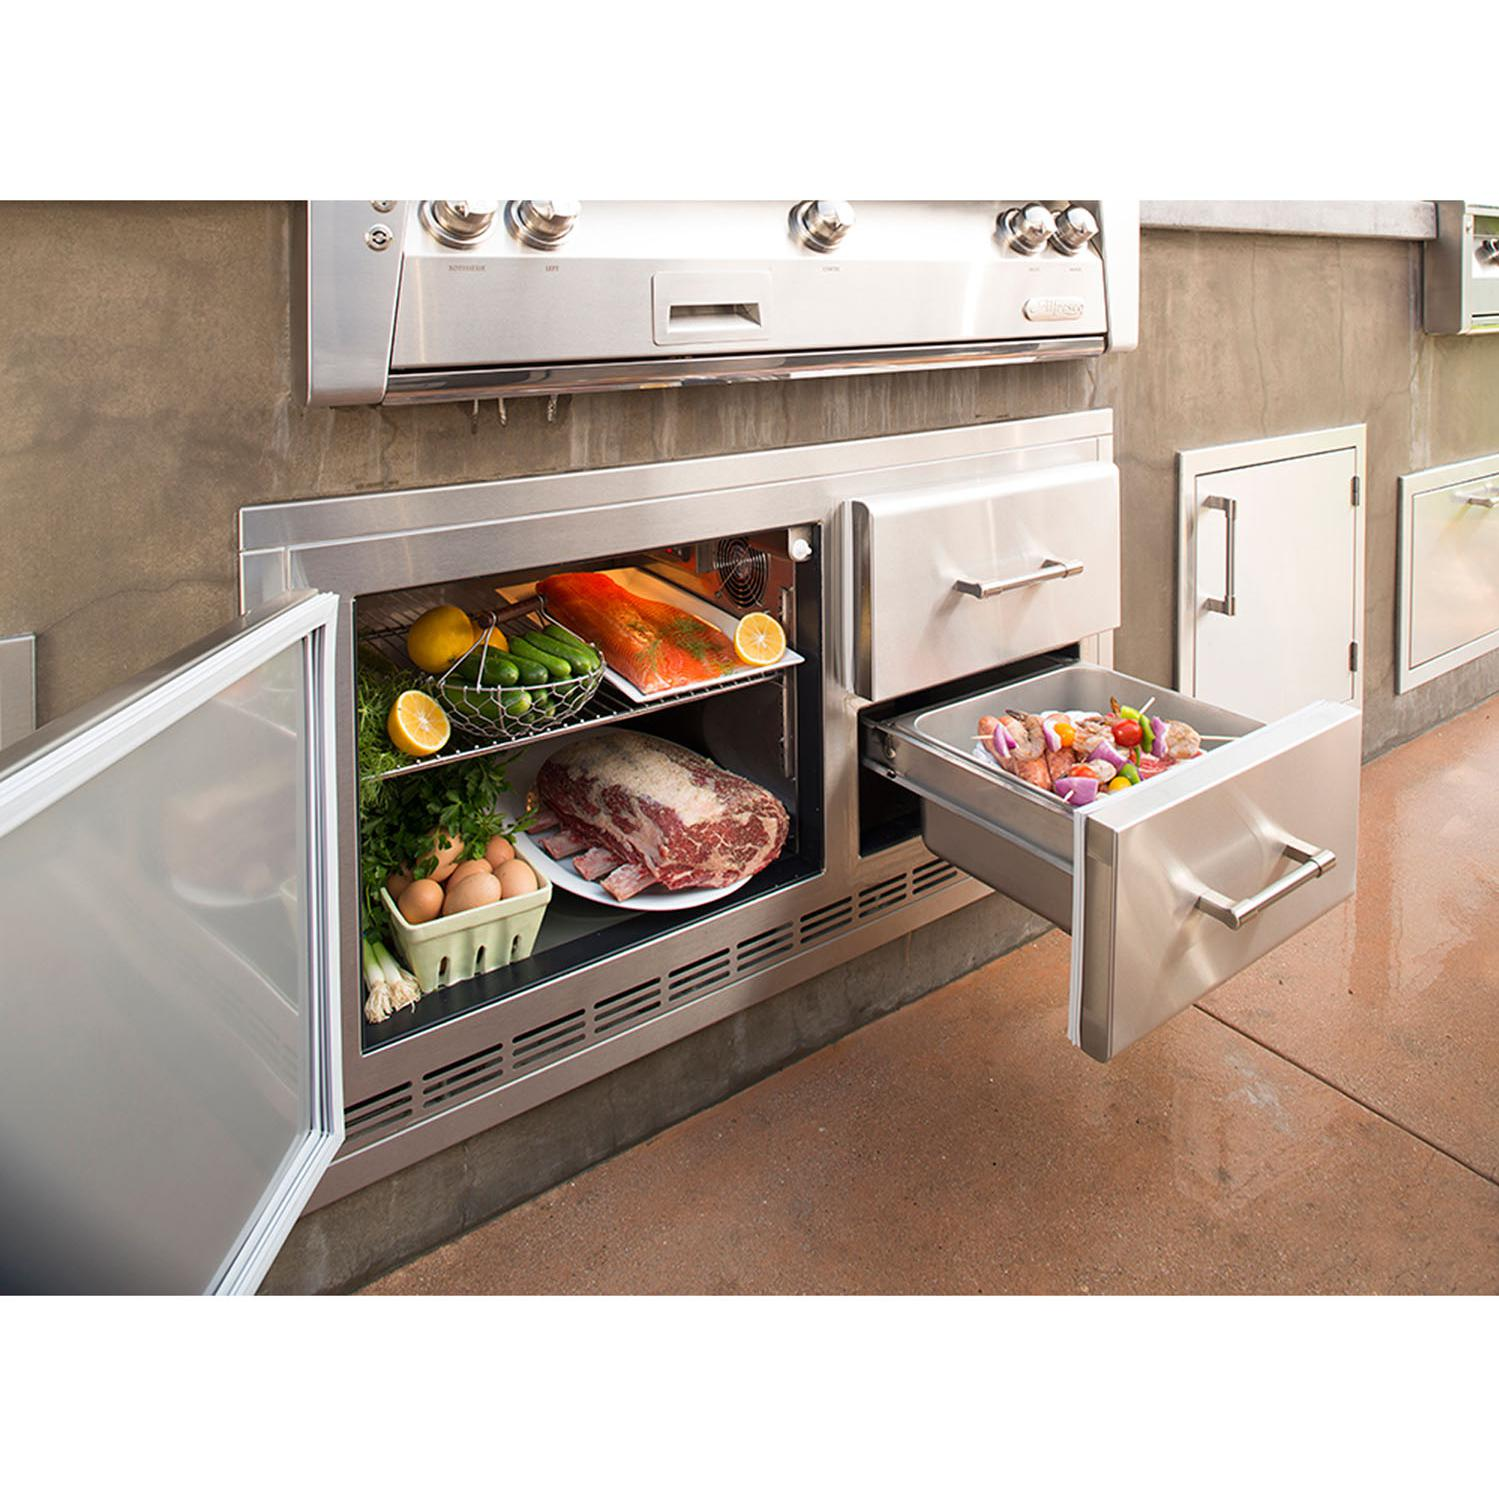 Alfresco 42-Inch Under Grill Refrigerator